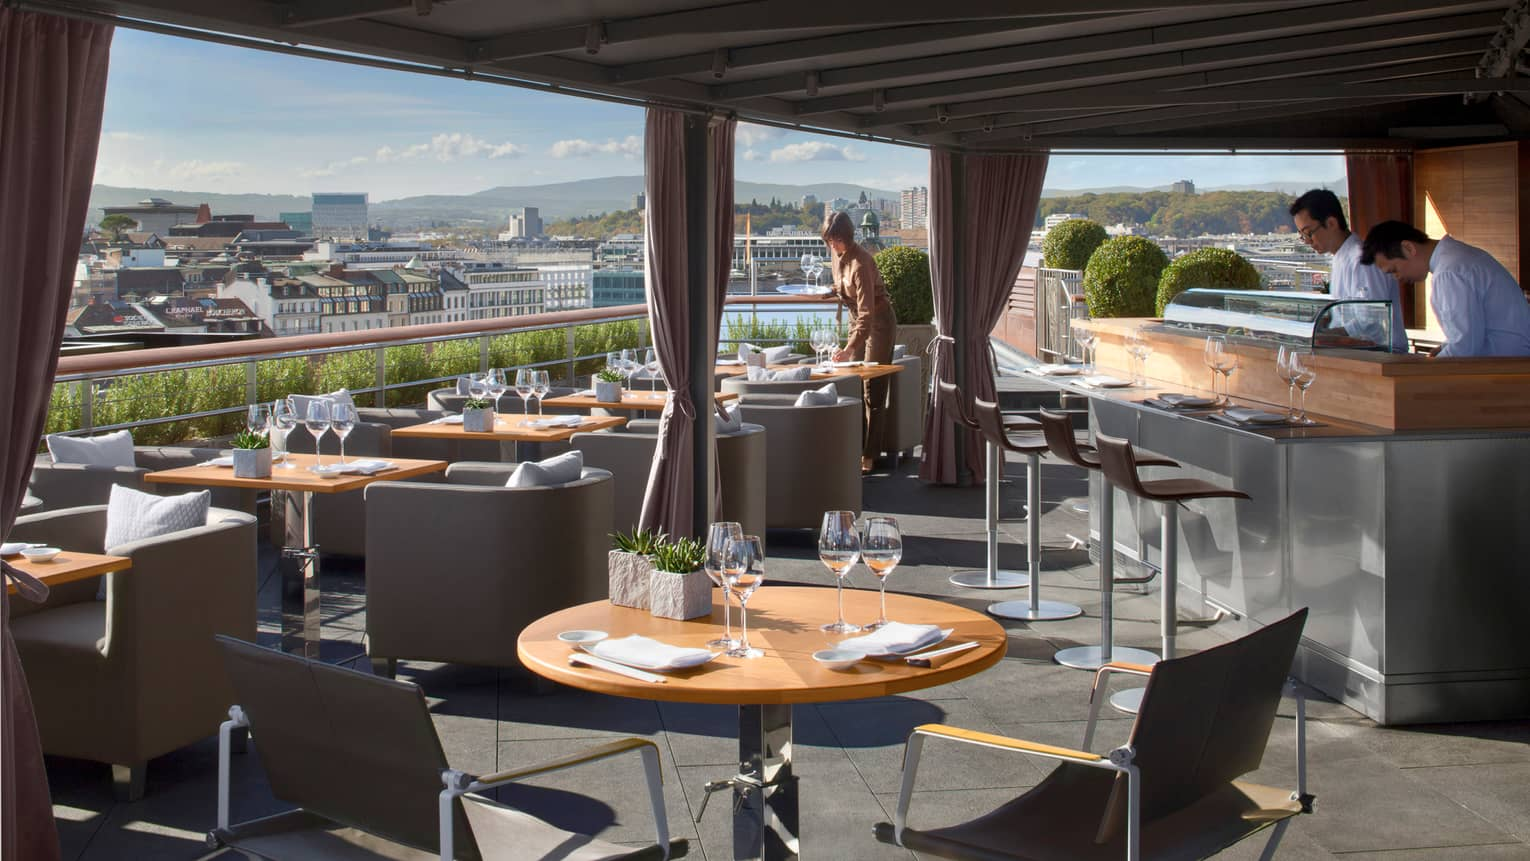 Feast on 360˚ rooftop patio dining tables and chairs under awning on sunny day, bartenders and server sets table